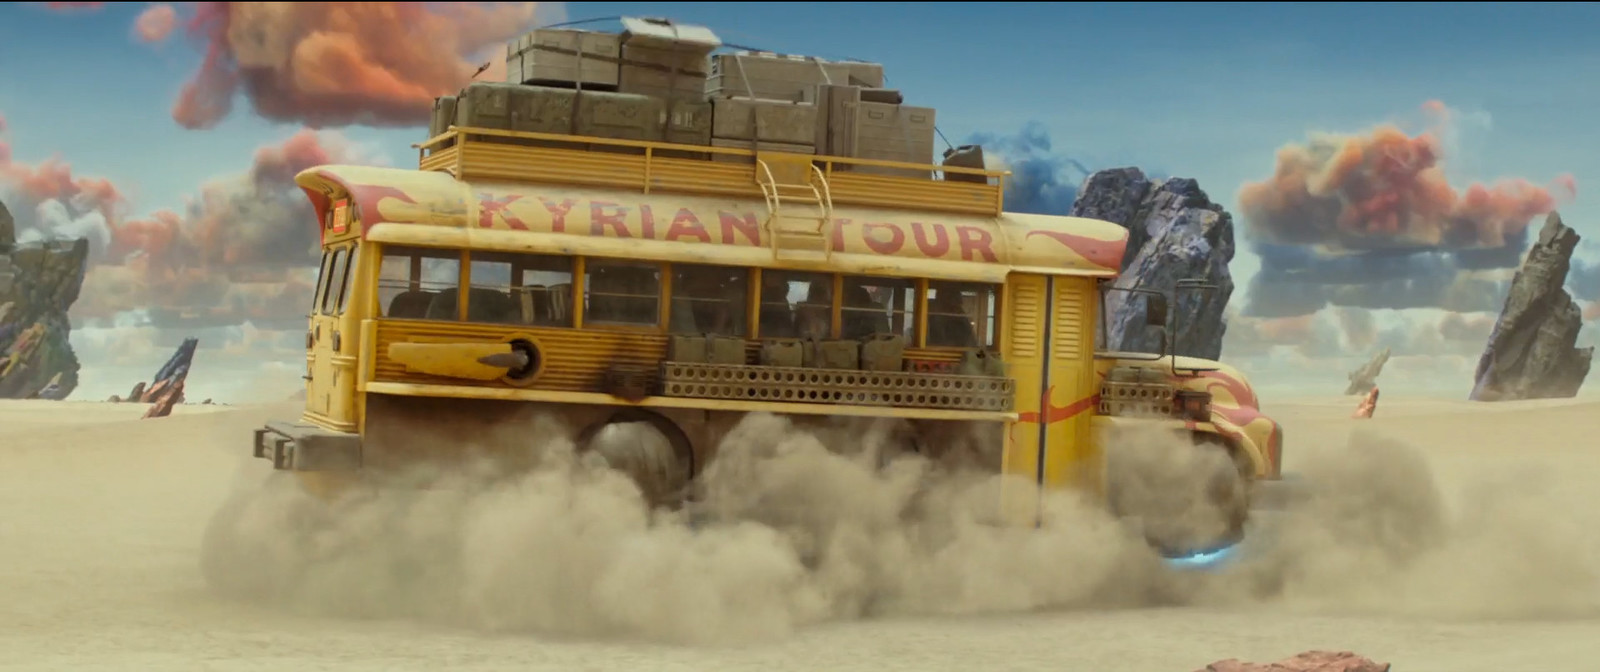 (Valerian: City of a Thousand Planets - ILM) Combat Bus - Modelled both Tourist and Combat variations of the bus